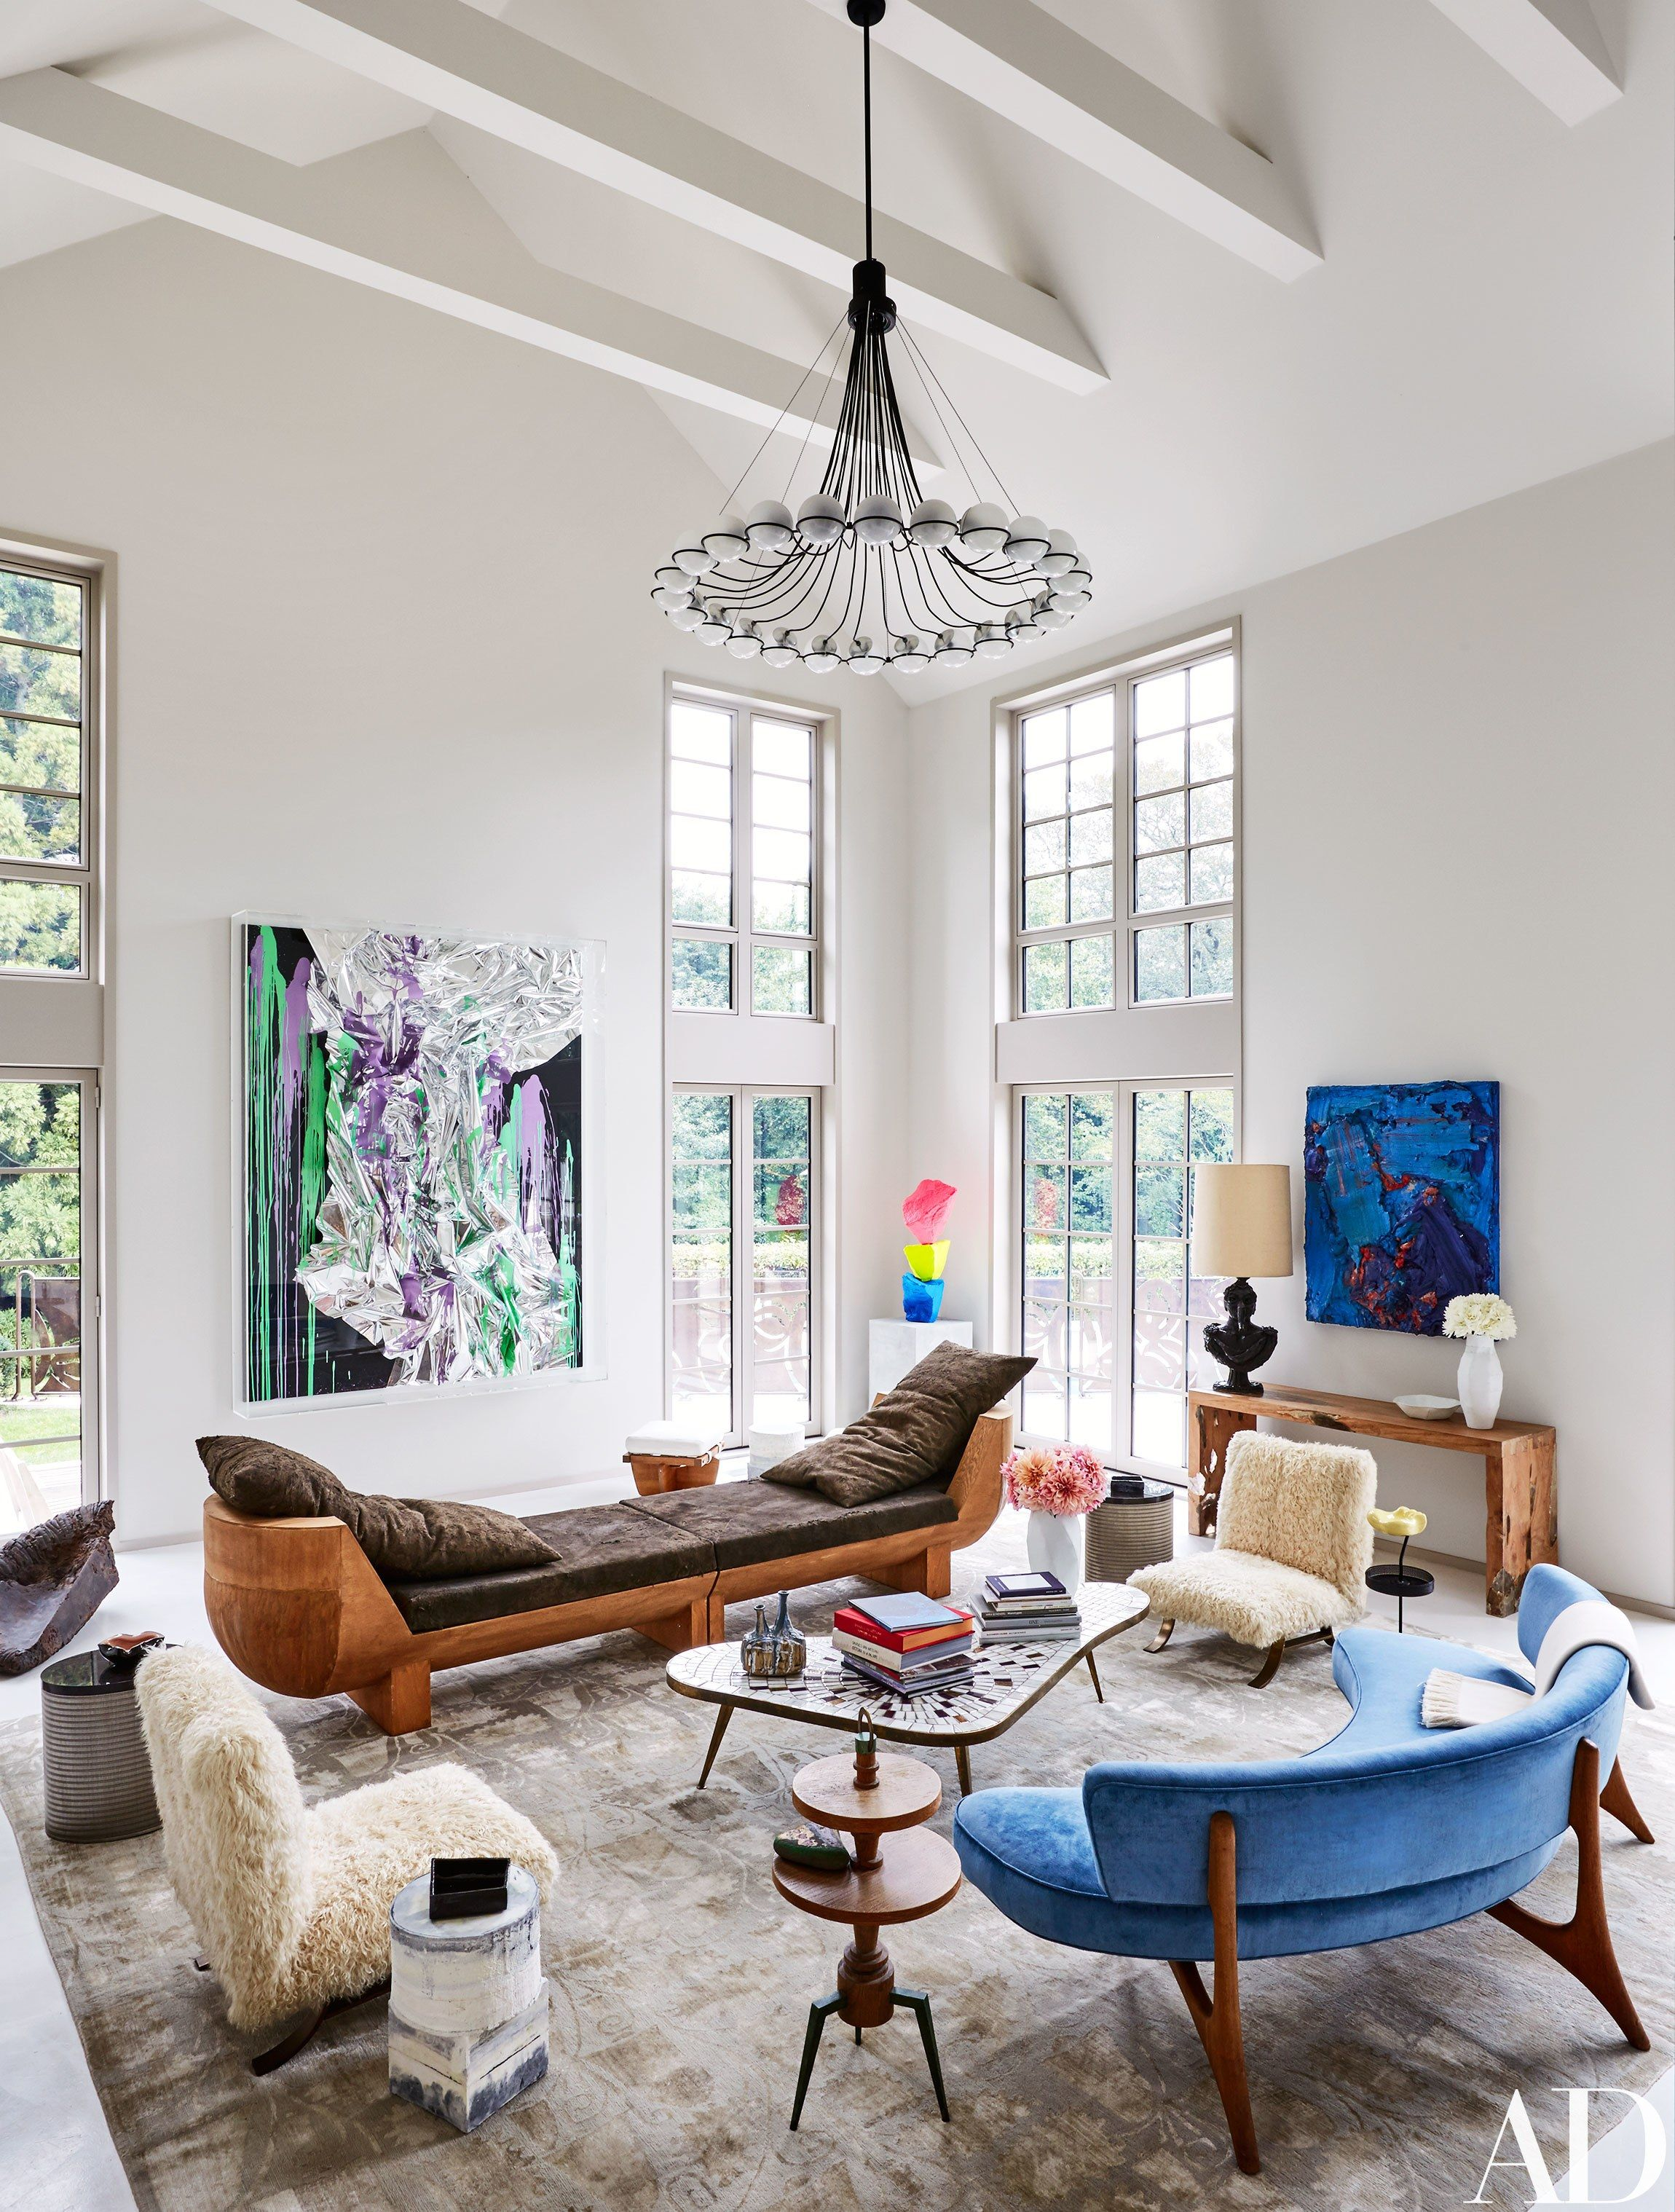 44 of the Best Living Rooms of 2016 | Architectural digest, Living ...